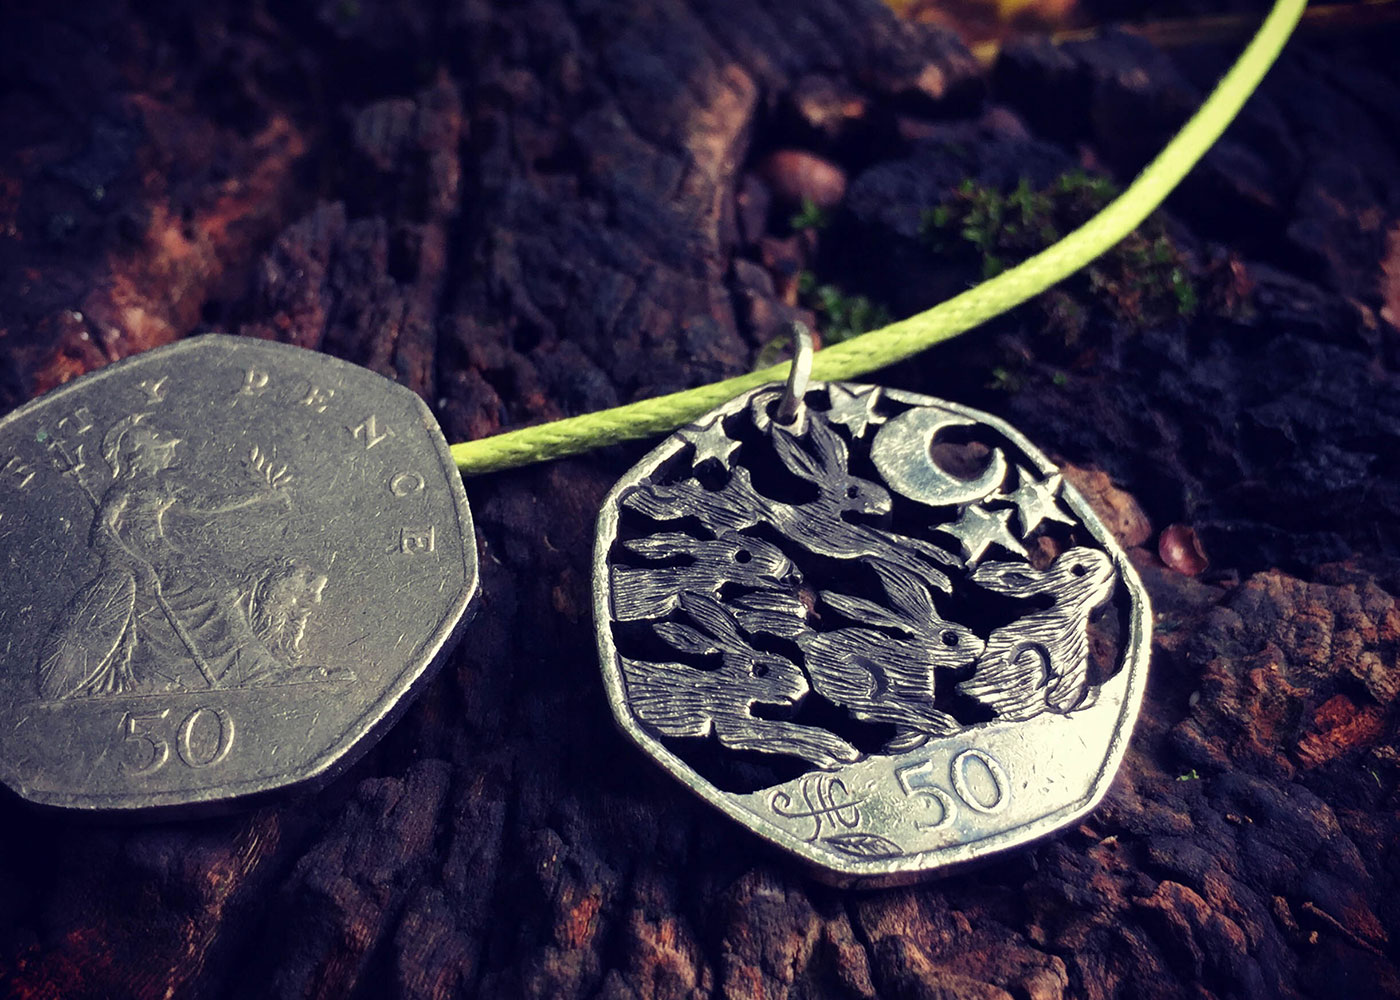 Magical hares and rabbits jewellery - Recycled out of circulation Fifty pence coin